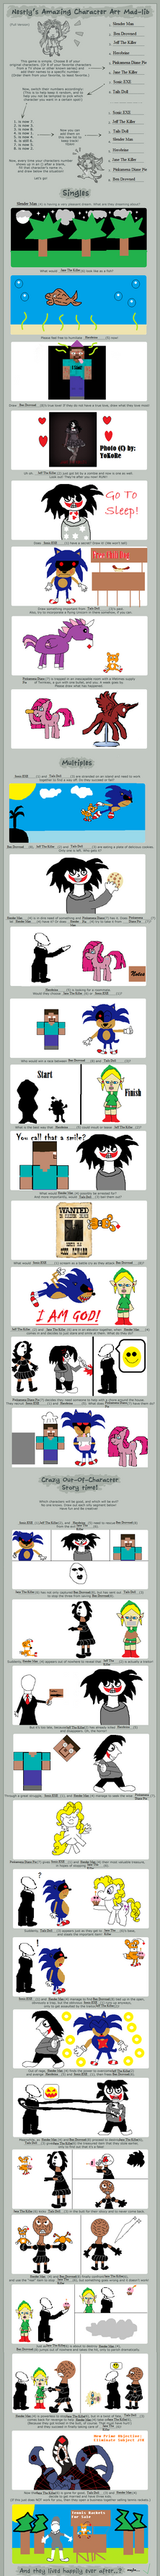 Creepypasta Character Art Mad Lib by Fortuneteller102